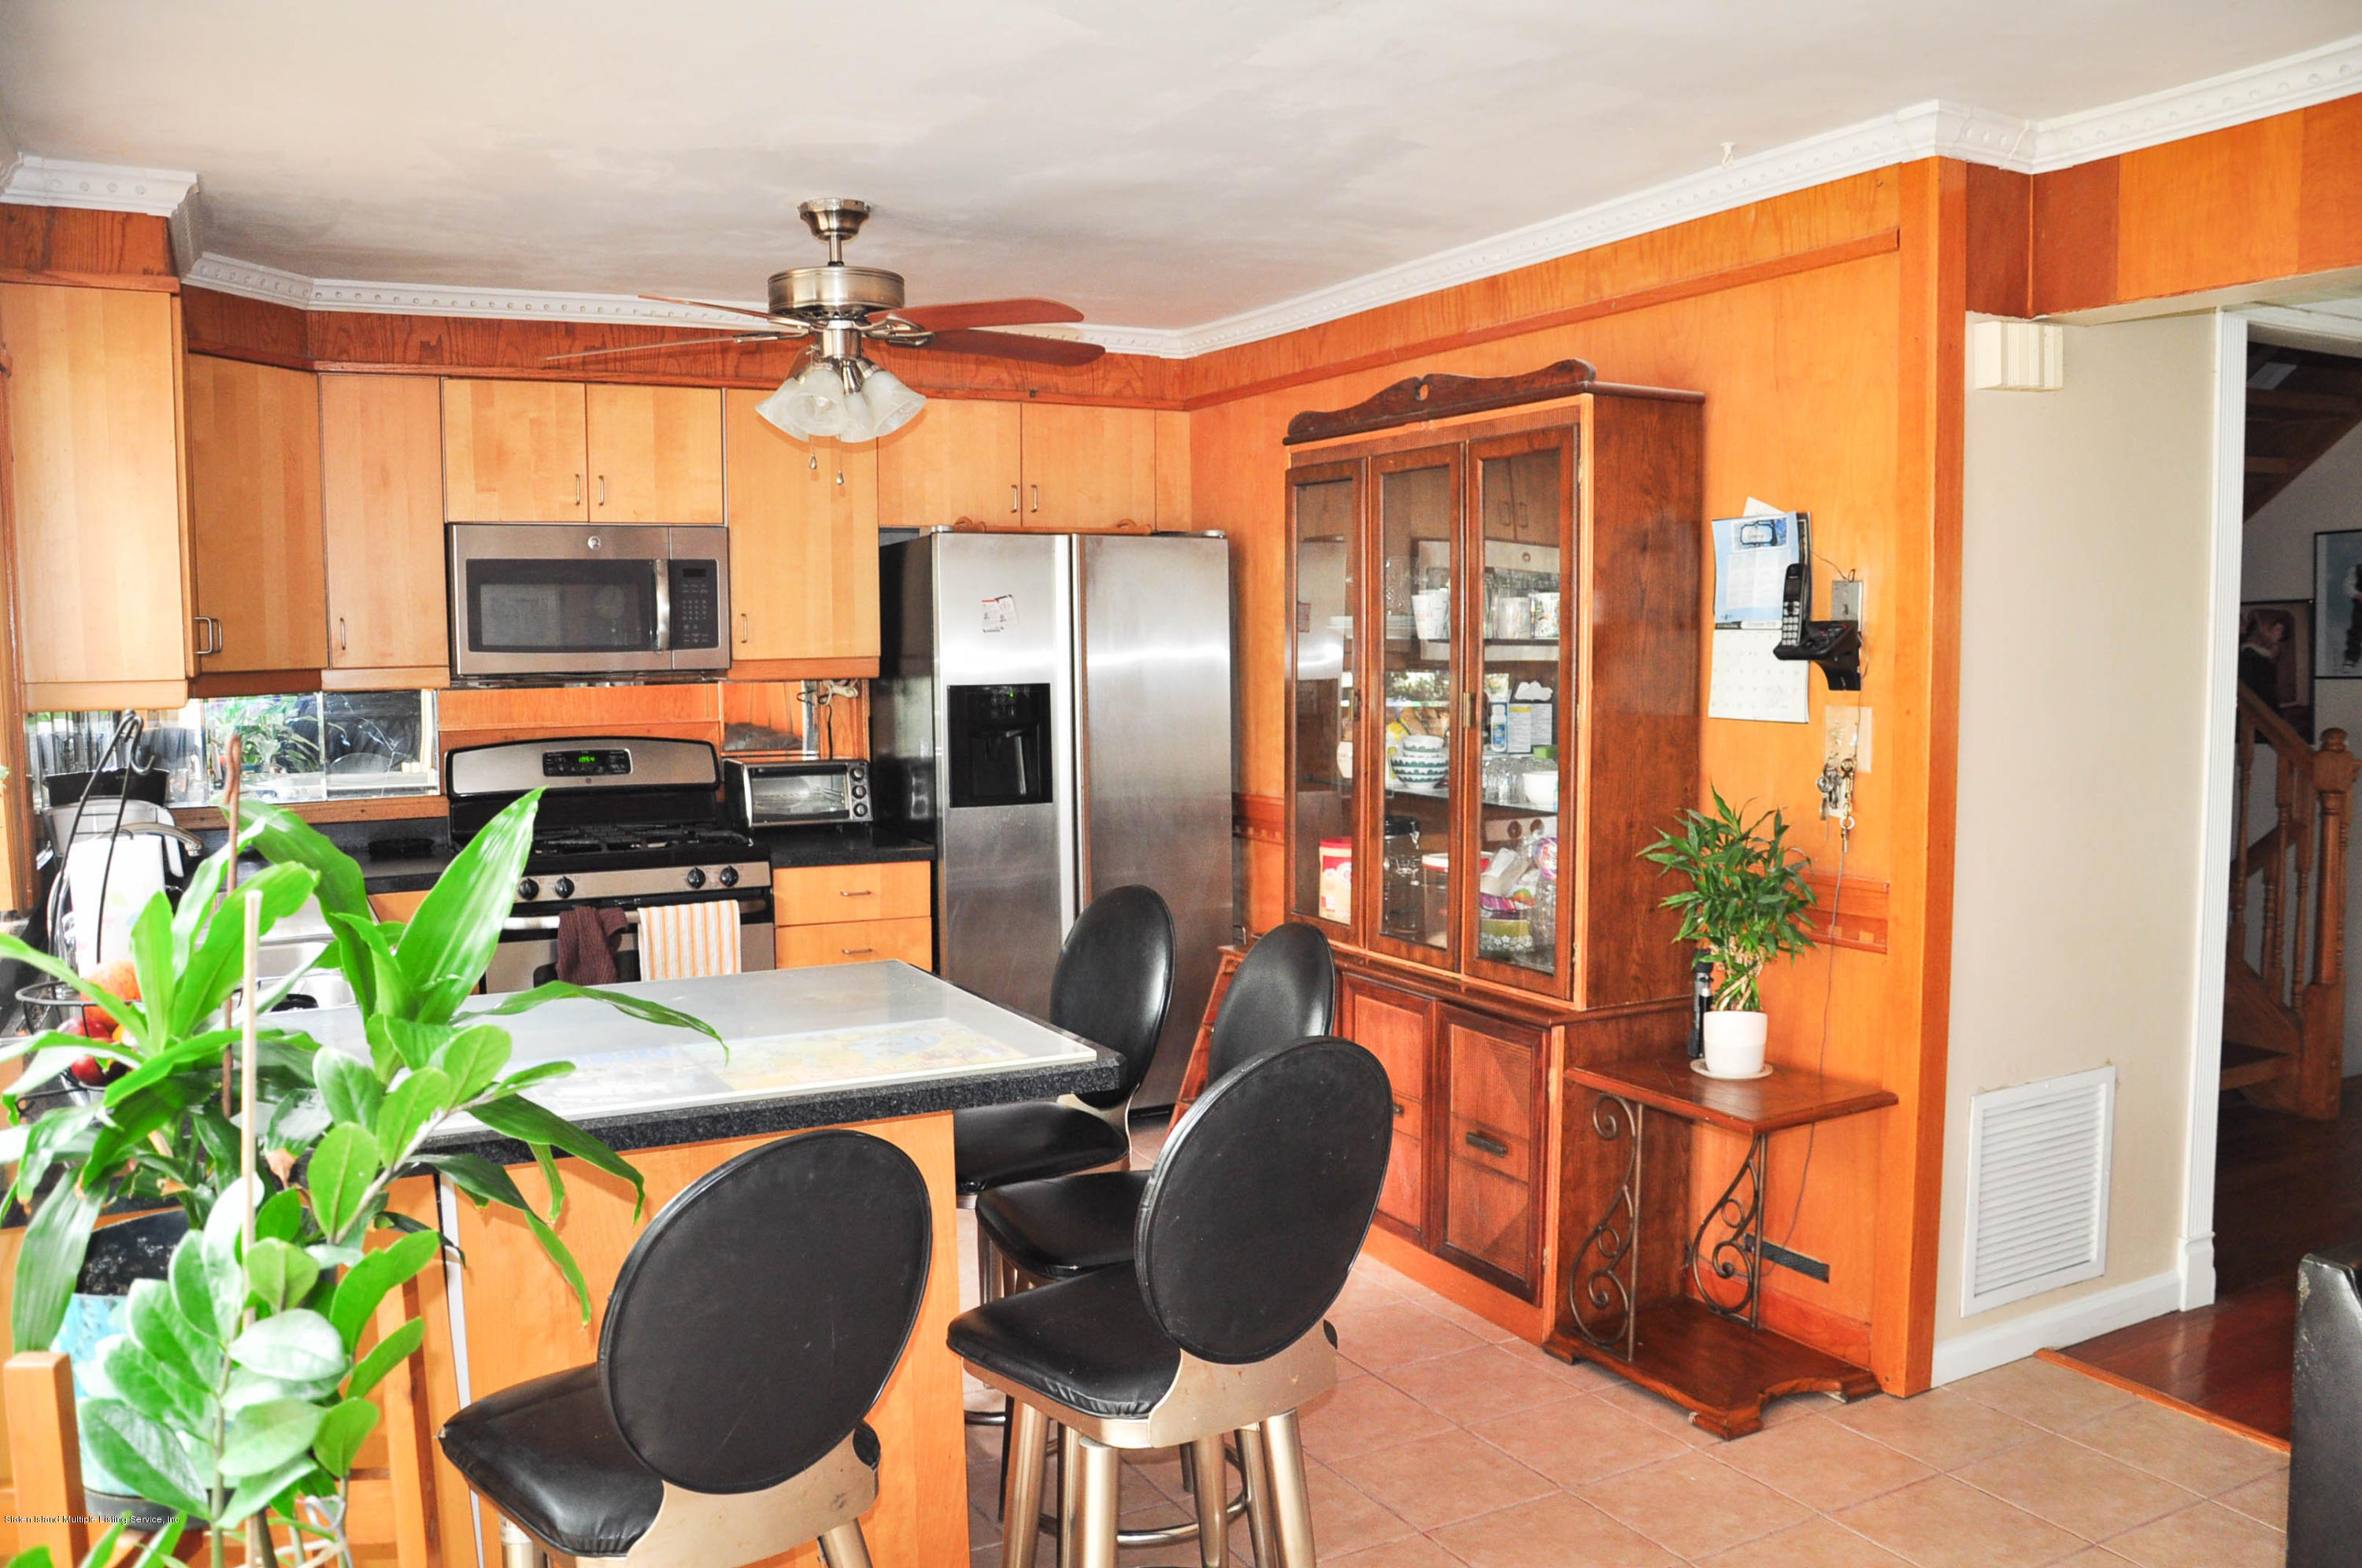 Single Family - Detached 36 Woodrow Road   Staten Island, NY 10312, MLS-1123257-9